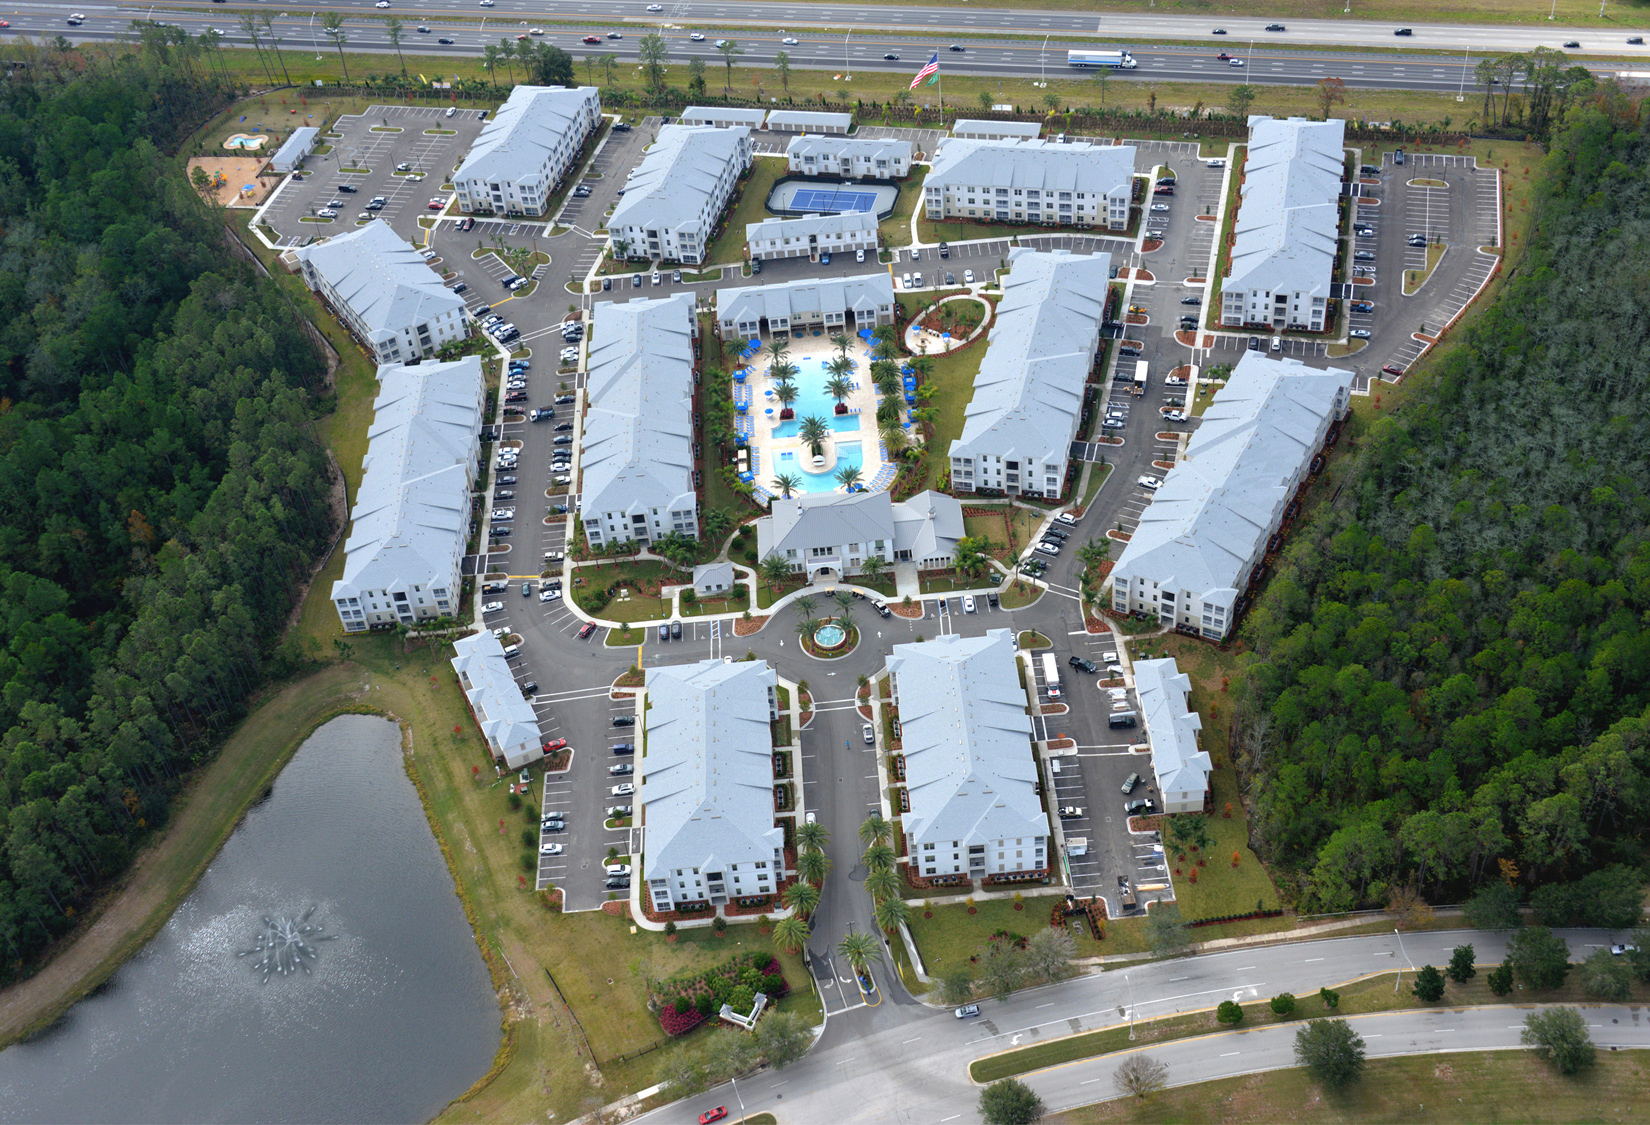 Aerial view of luxury apartment buildings